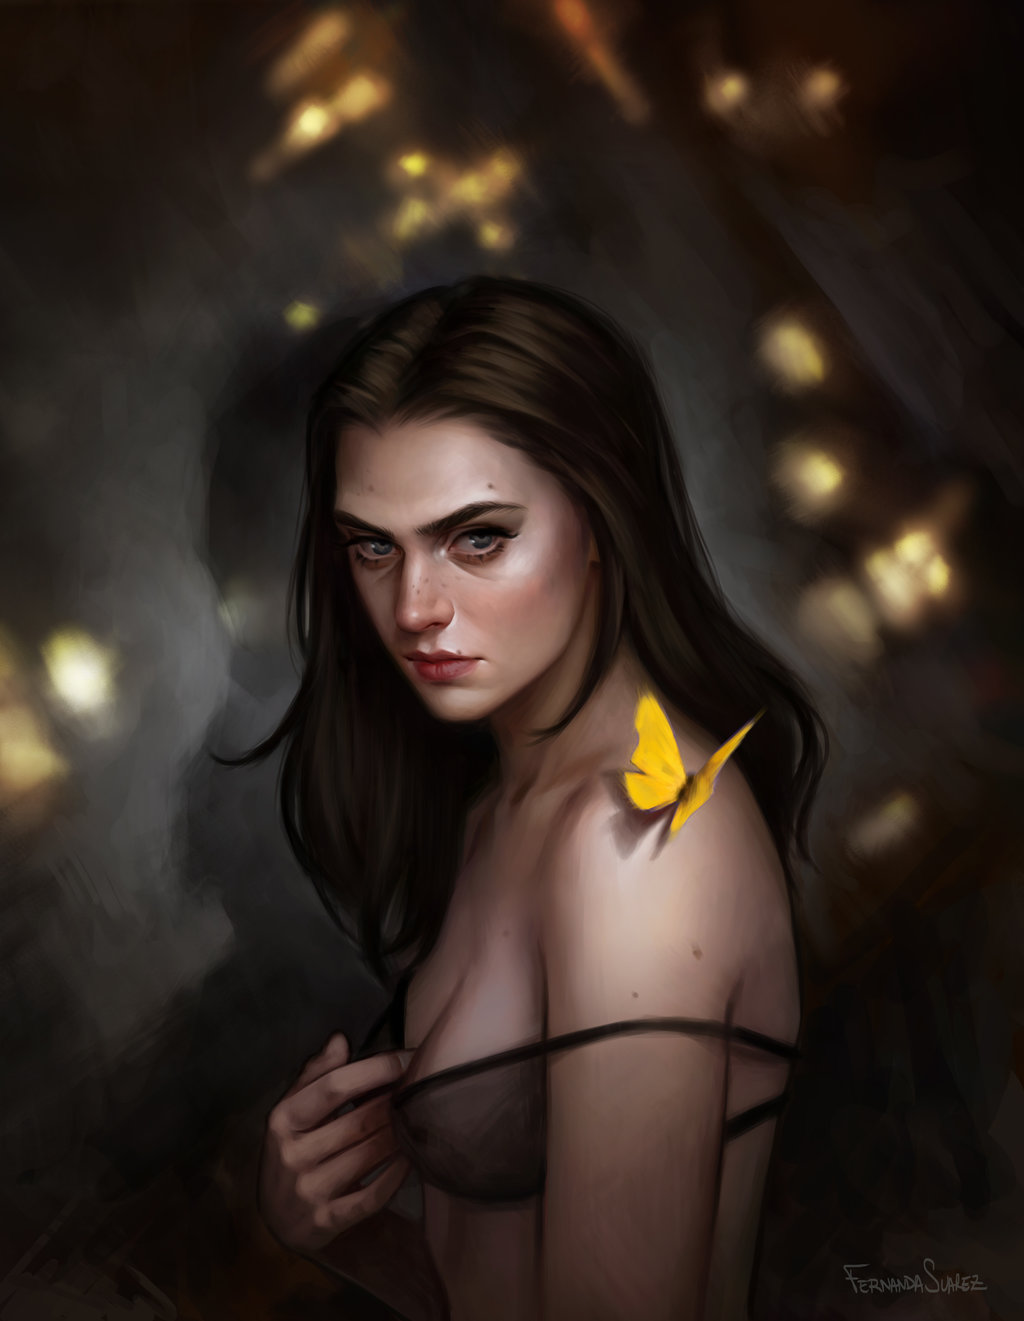 Fernanda_Suarez_digital_painting_illustration_portrait_butterfly